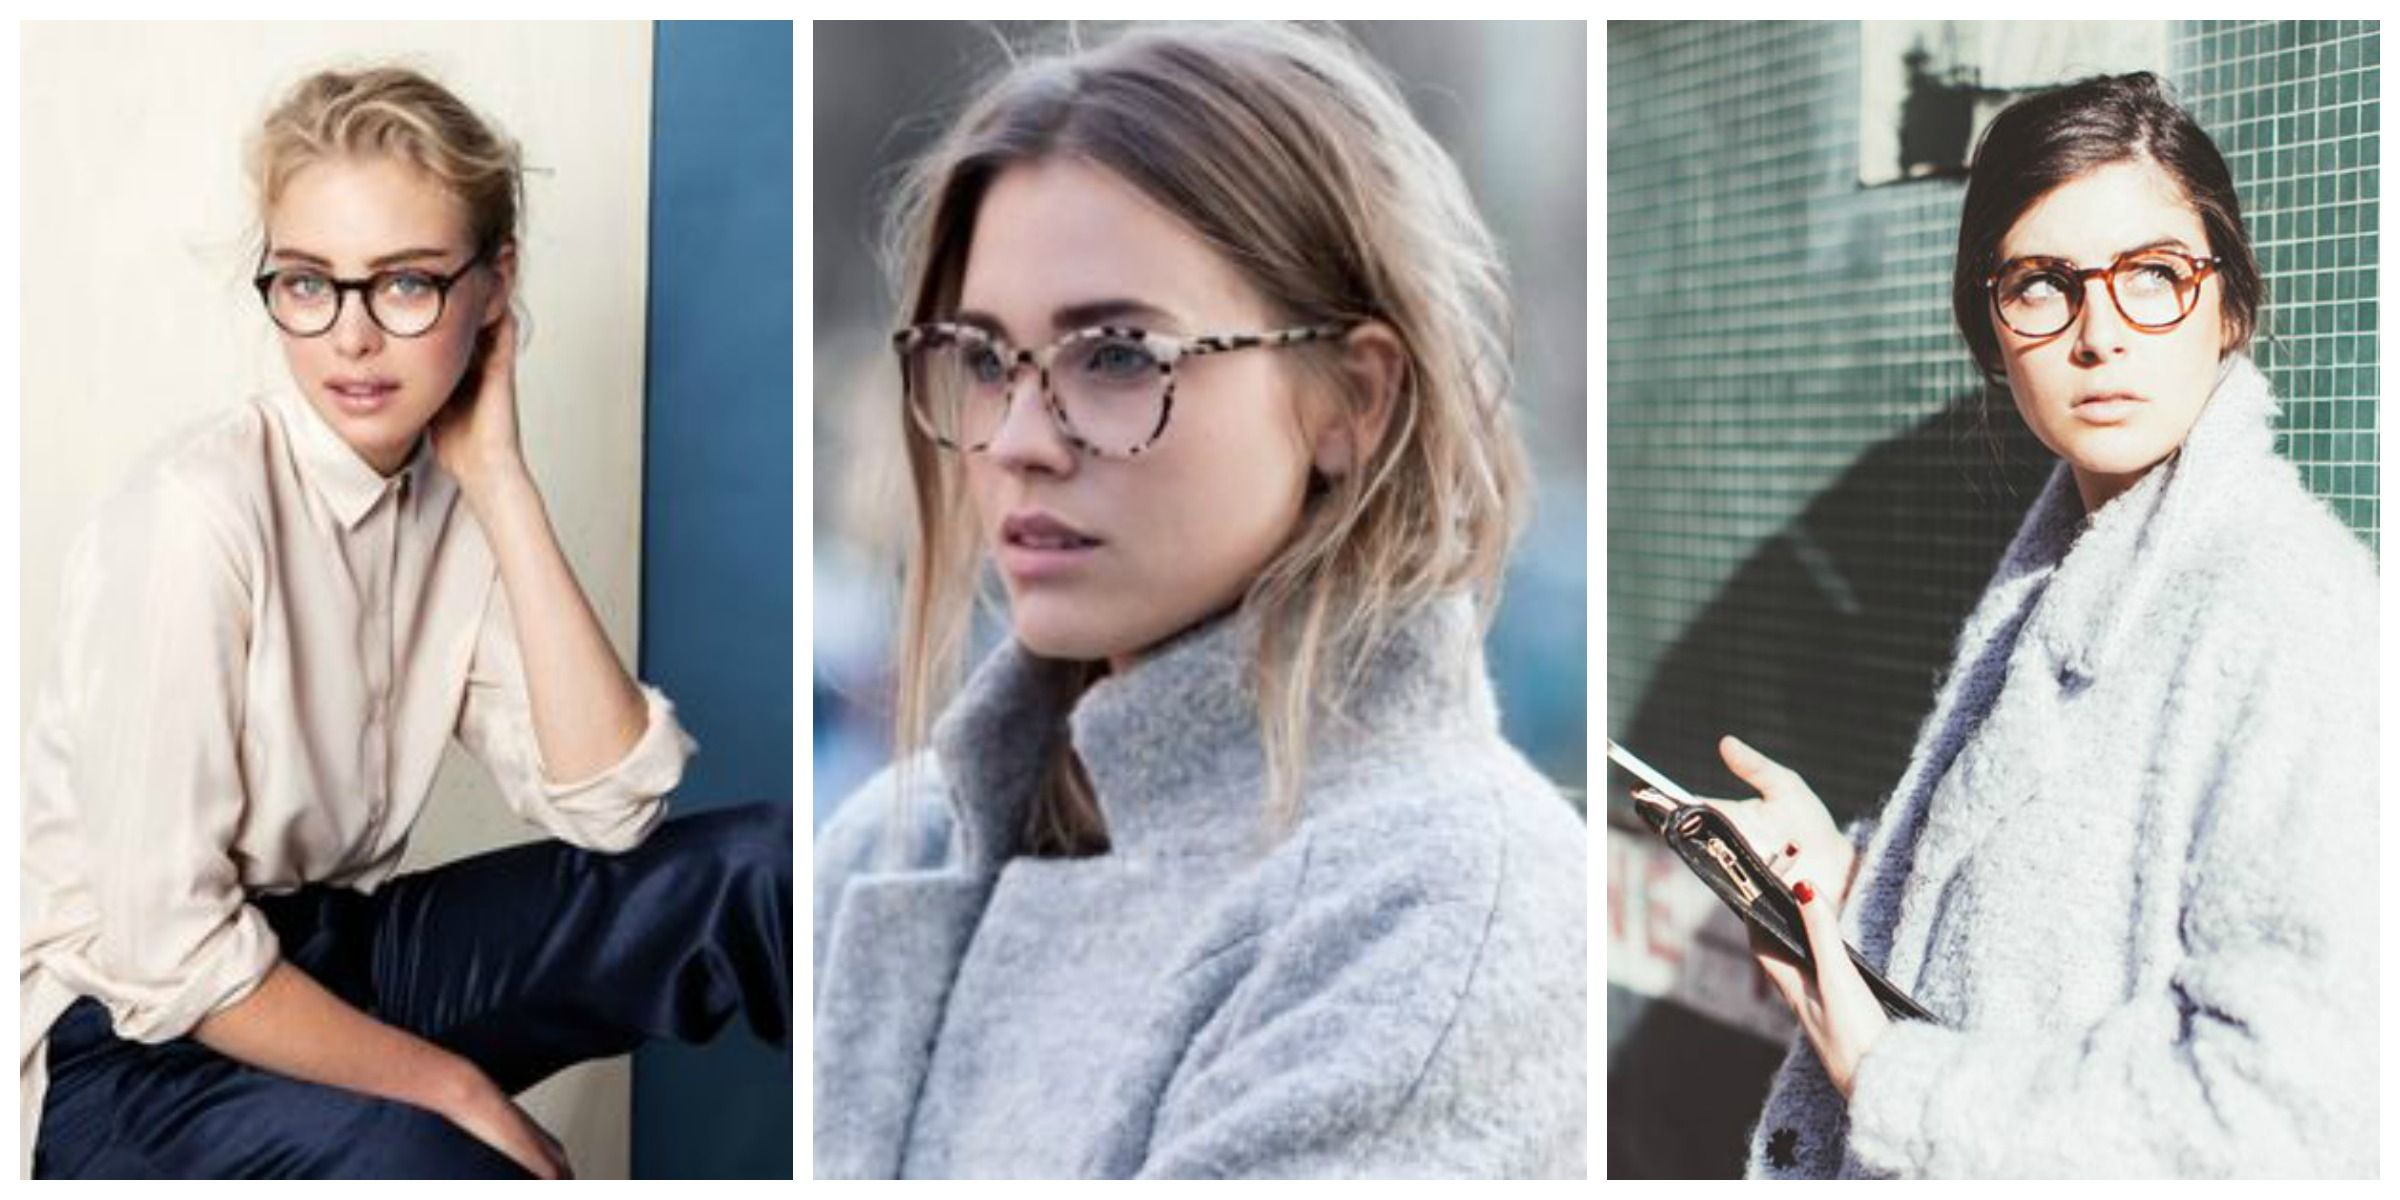 b39dd73f278 EYEGLASSES Trends 2017  What To Wear  – The Fashion Tag Blog. women-glasses-trends.jpg  ...